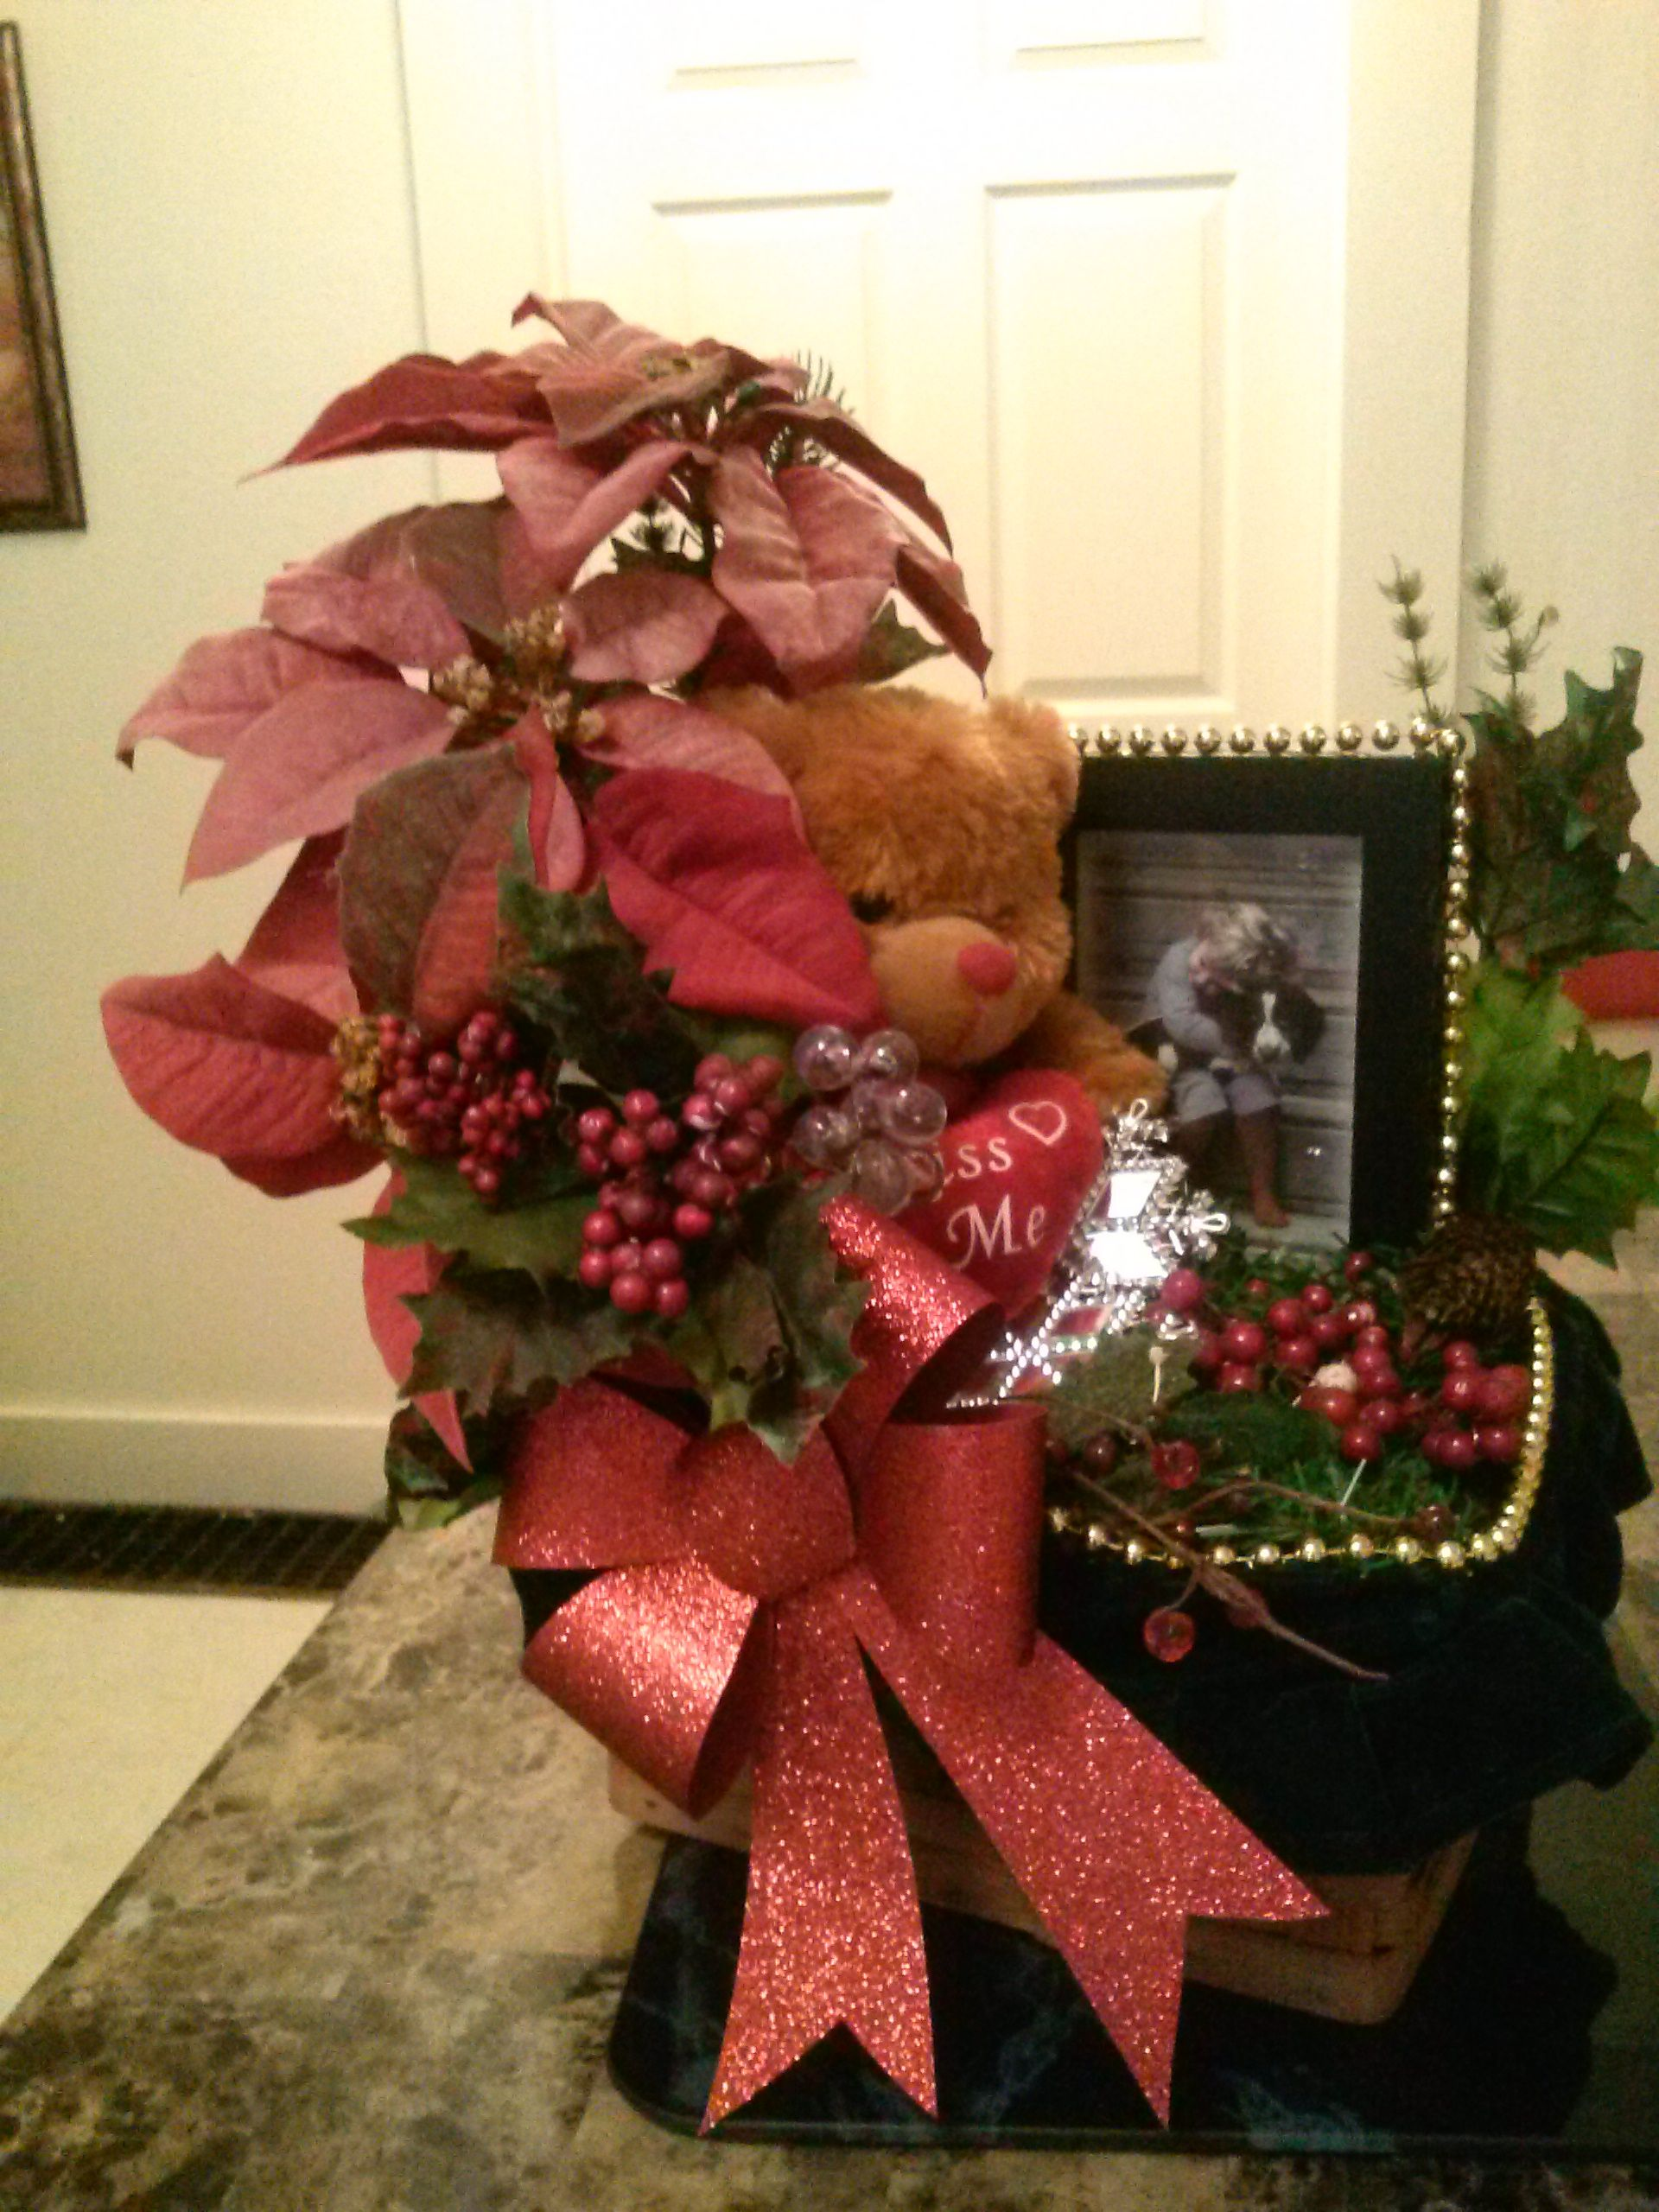 Poinsettia with teddy bear with picture frame just add picture.